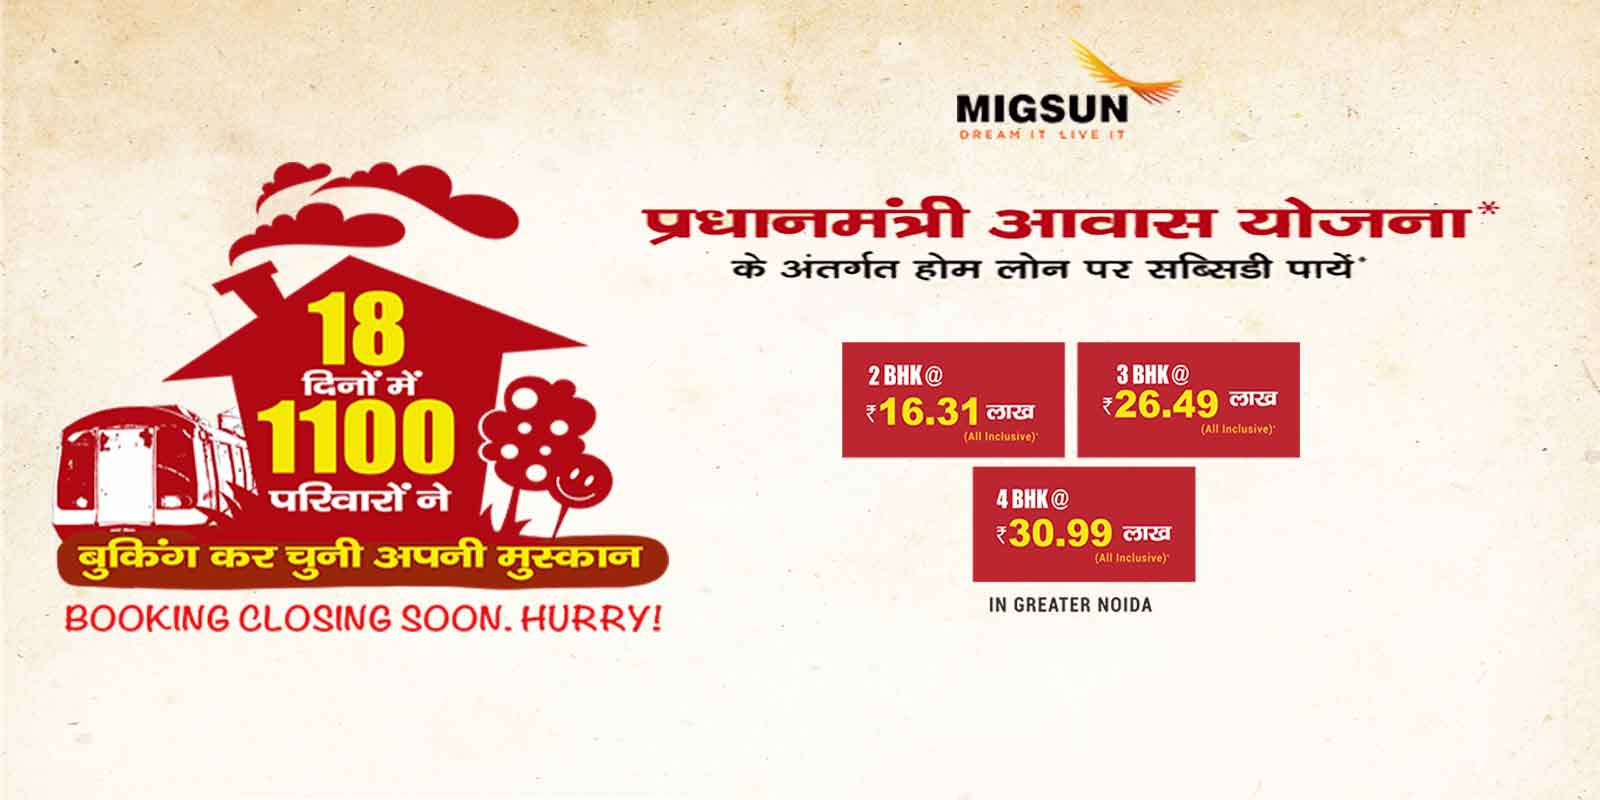 Migsun Vilaasa 2,3 BHK Greater Noida call us: +919210333666